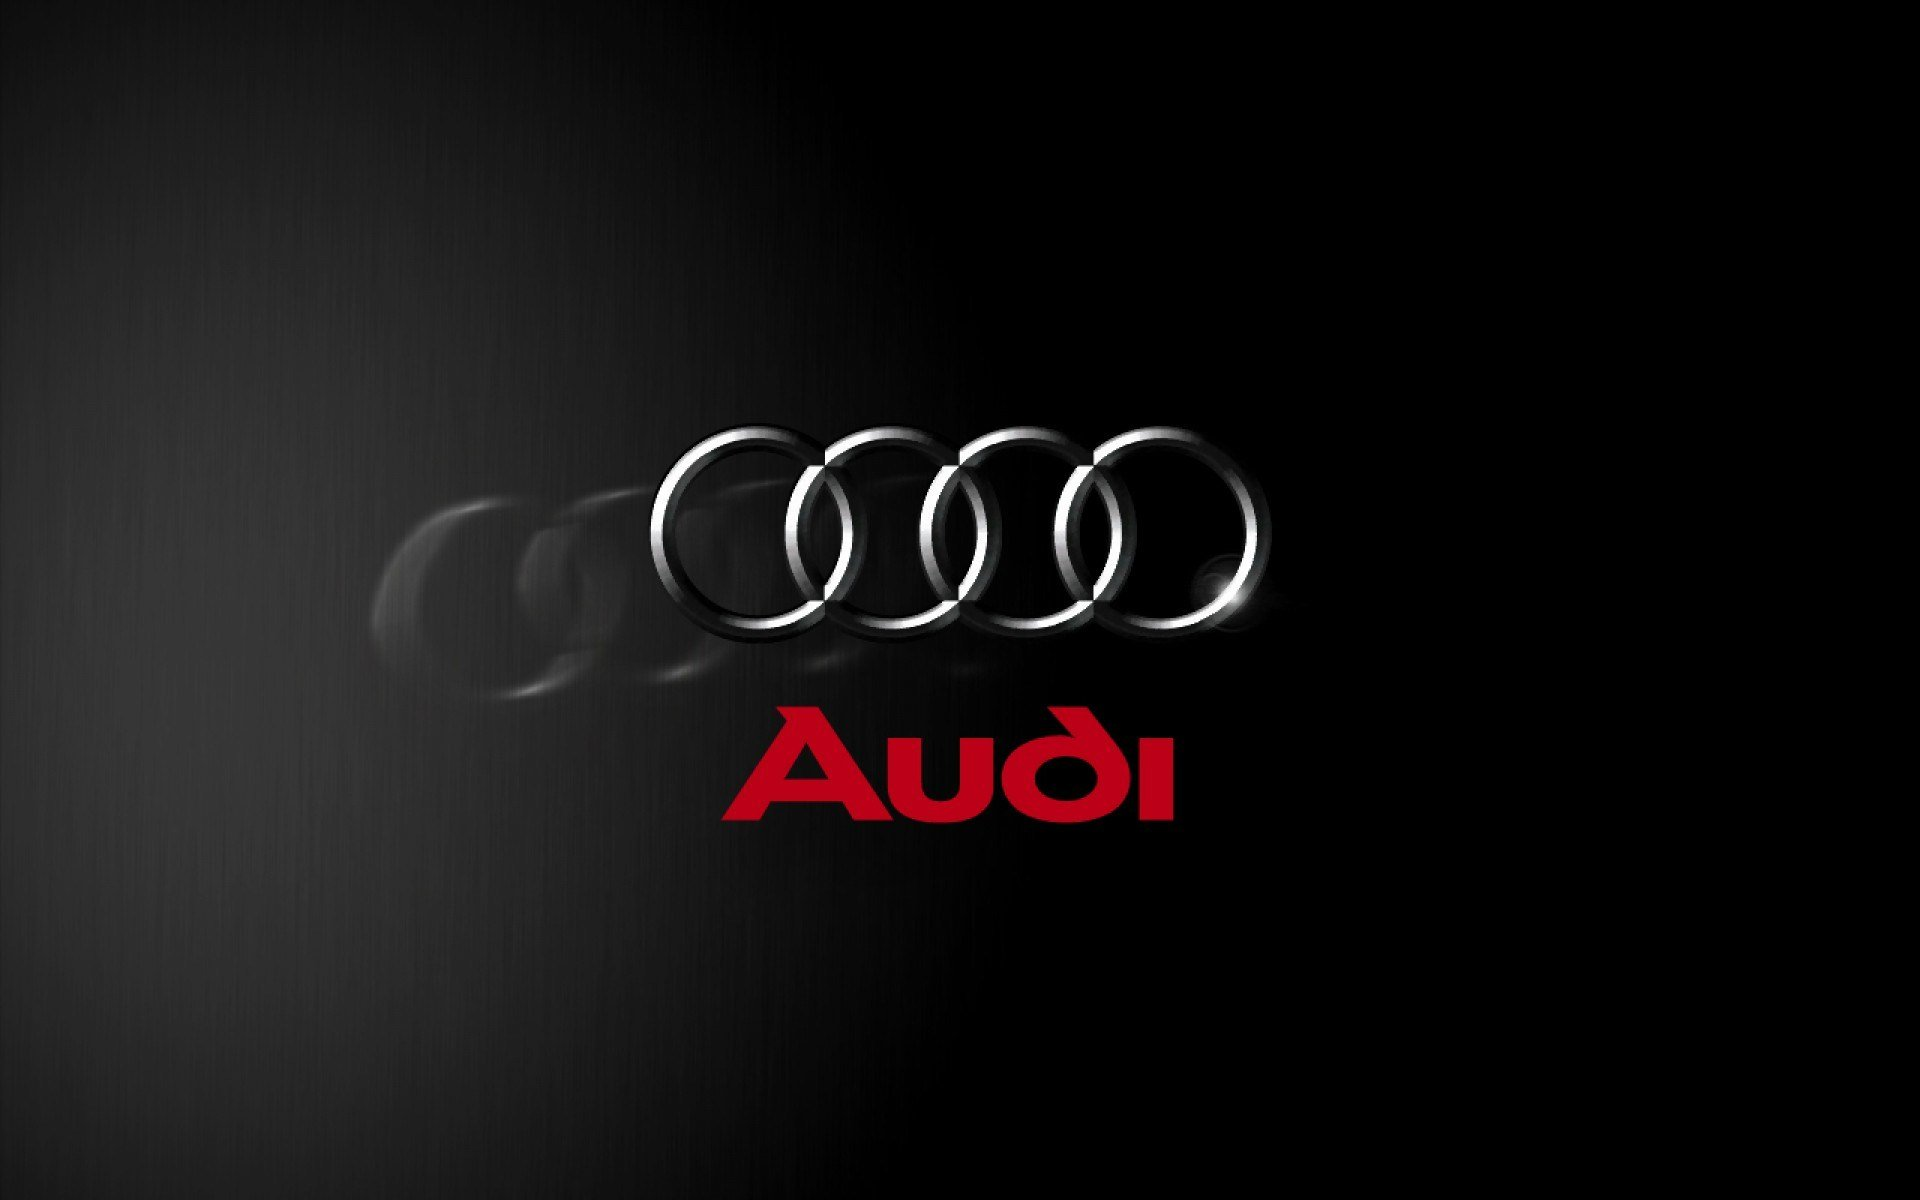 Latest 7 Hd Audi Logo Wallpapers Hdwallsource Com Free Download